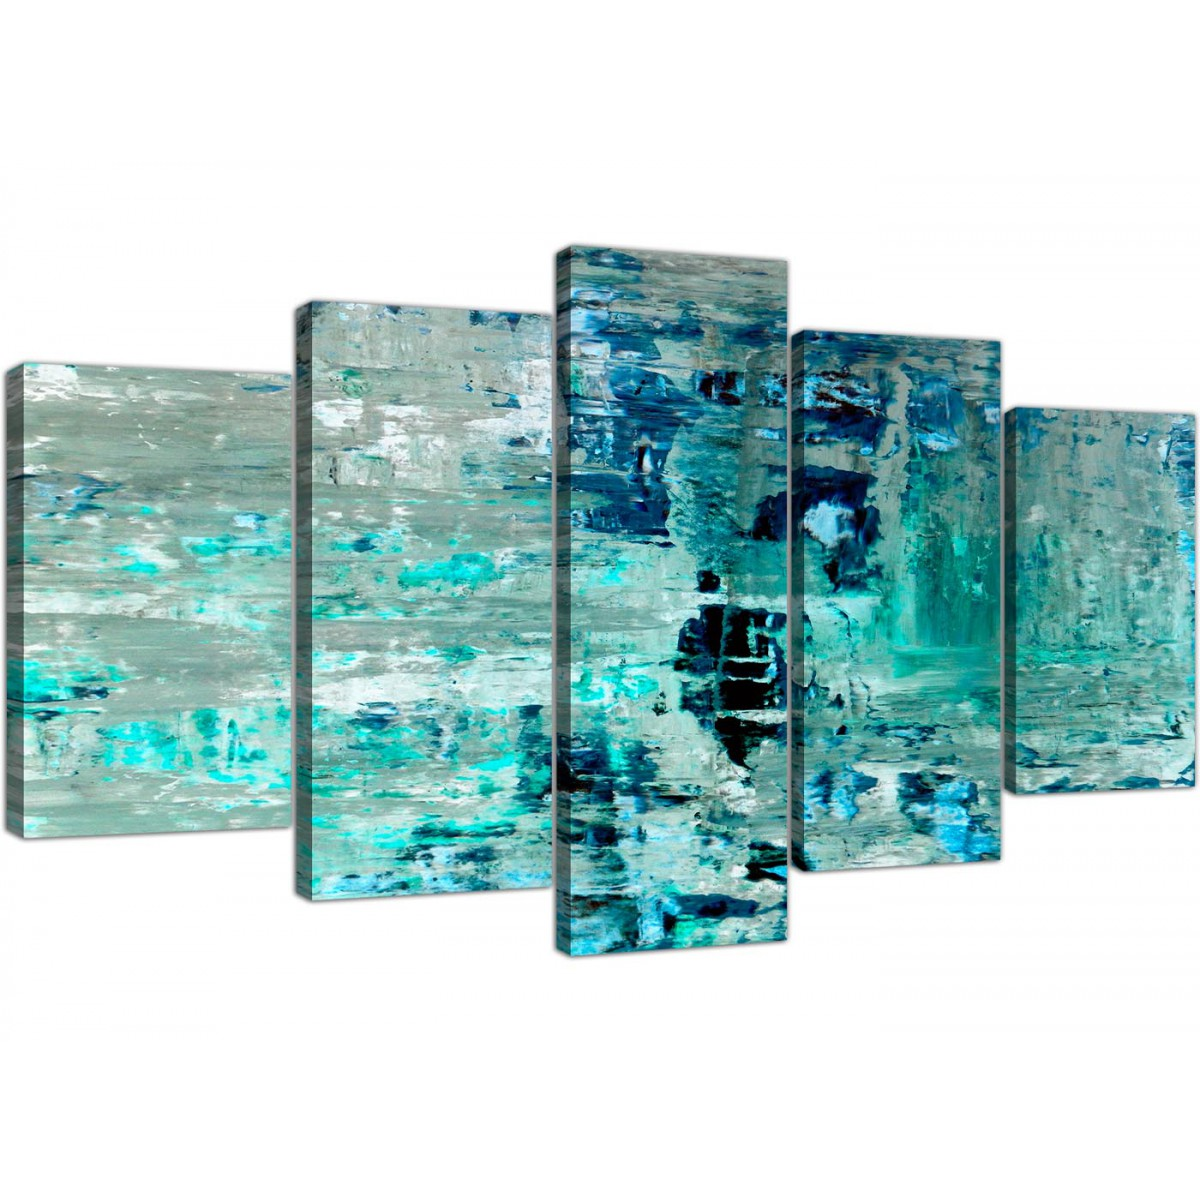 Extra Large Turquoise Teal Abstract Painting Wall Art Print Canvas Multi 5 Set 5333